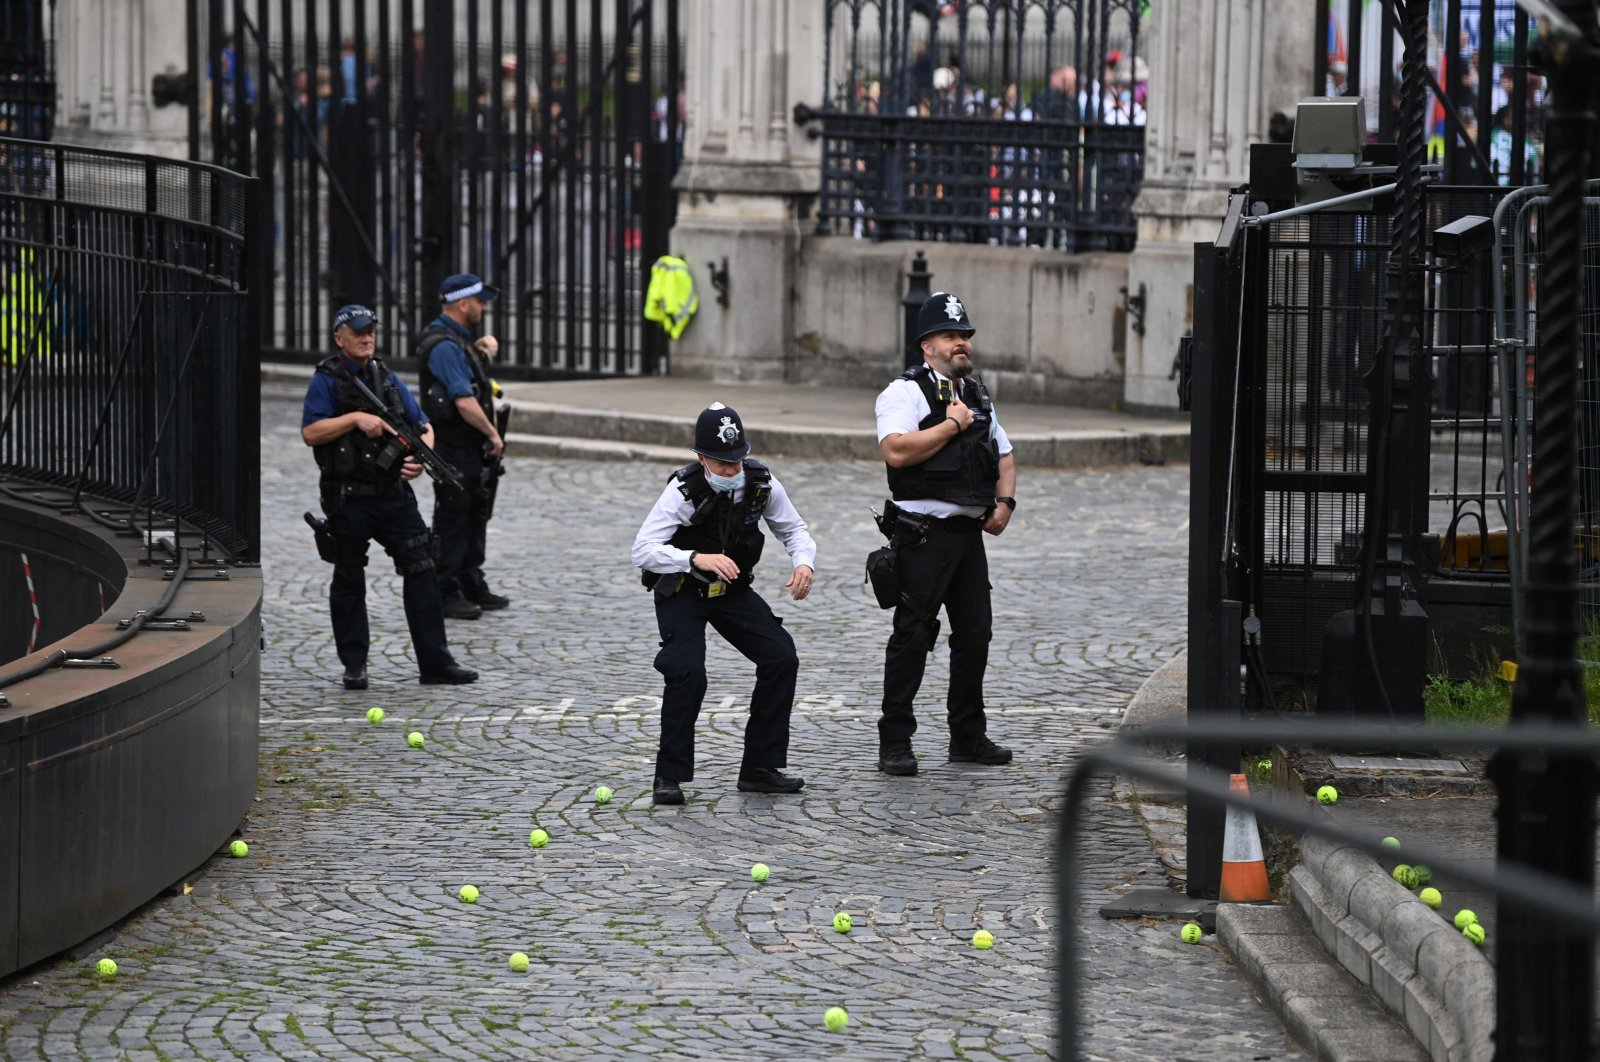 A policeman ducks as anti-vaccine and anti-lockdown protestors throw tennis balls at them in front of the U.K. Parliament, central London, June 26, 2021. (AFP Photo)